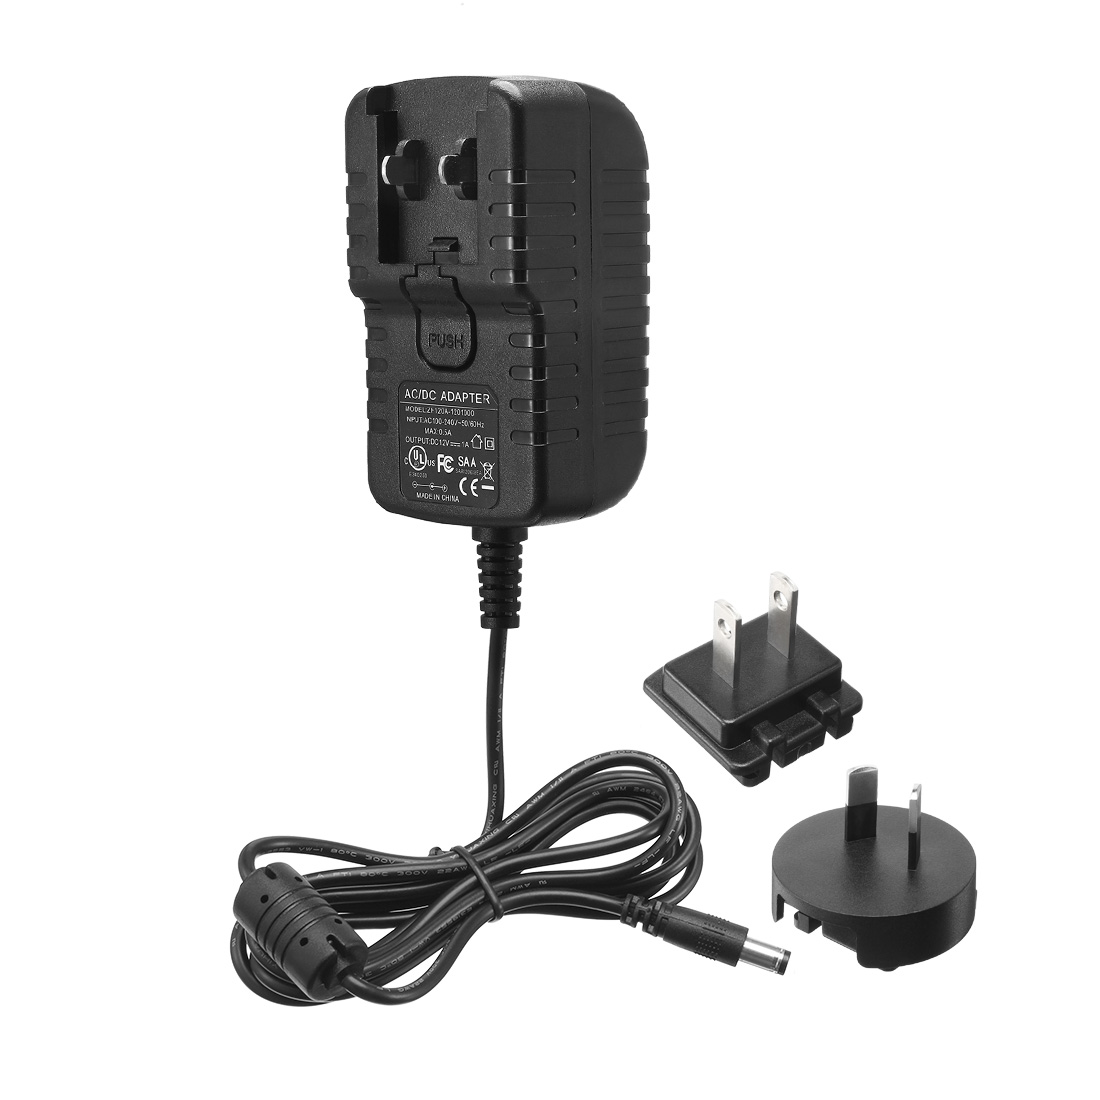 AC100-240V to DC 12V 1A Power Adapter Charger w AU US Plugs